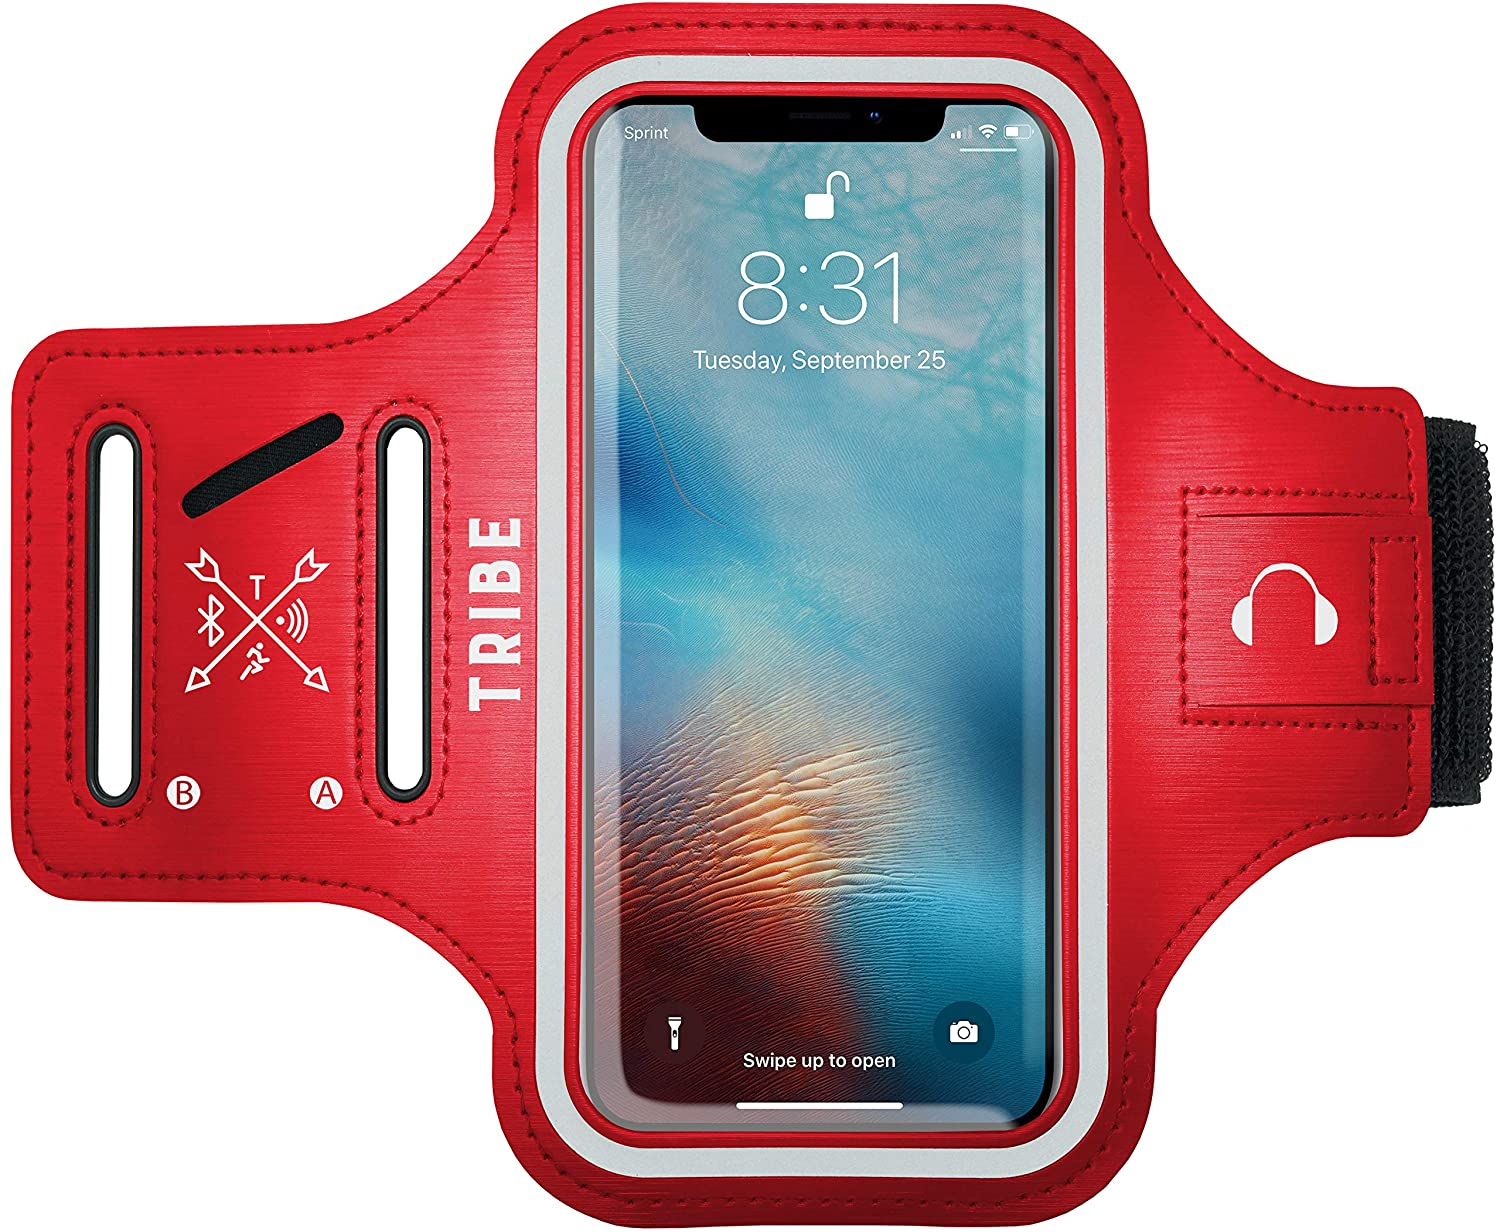 TRIBE Water Resistant Cell Phone Armband Case for iPhone Xs Max, XR, 8 Plus, 7 Plus, 6 Plus, 6S Plus, Samsung Galaxy S9 Plus, S8 Plus, A8 Plus, Note 4/5/8/9 with Adjustable Elastic Band & Key Holder